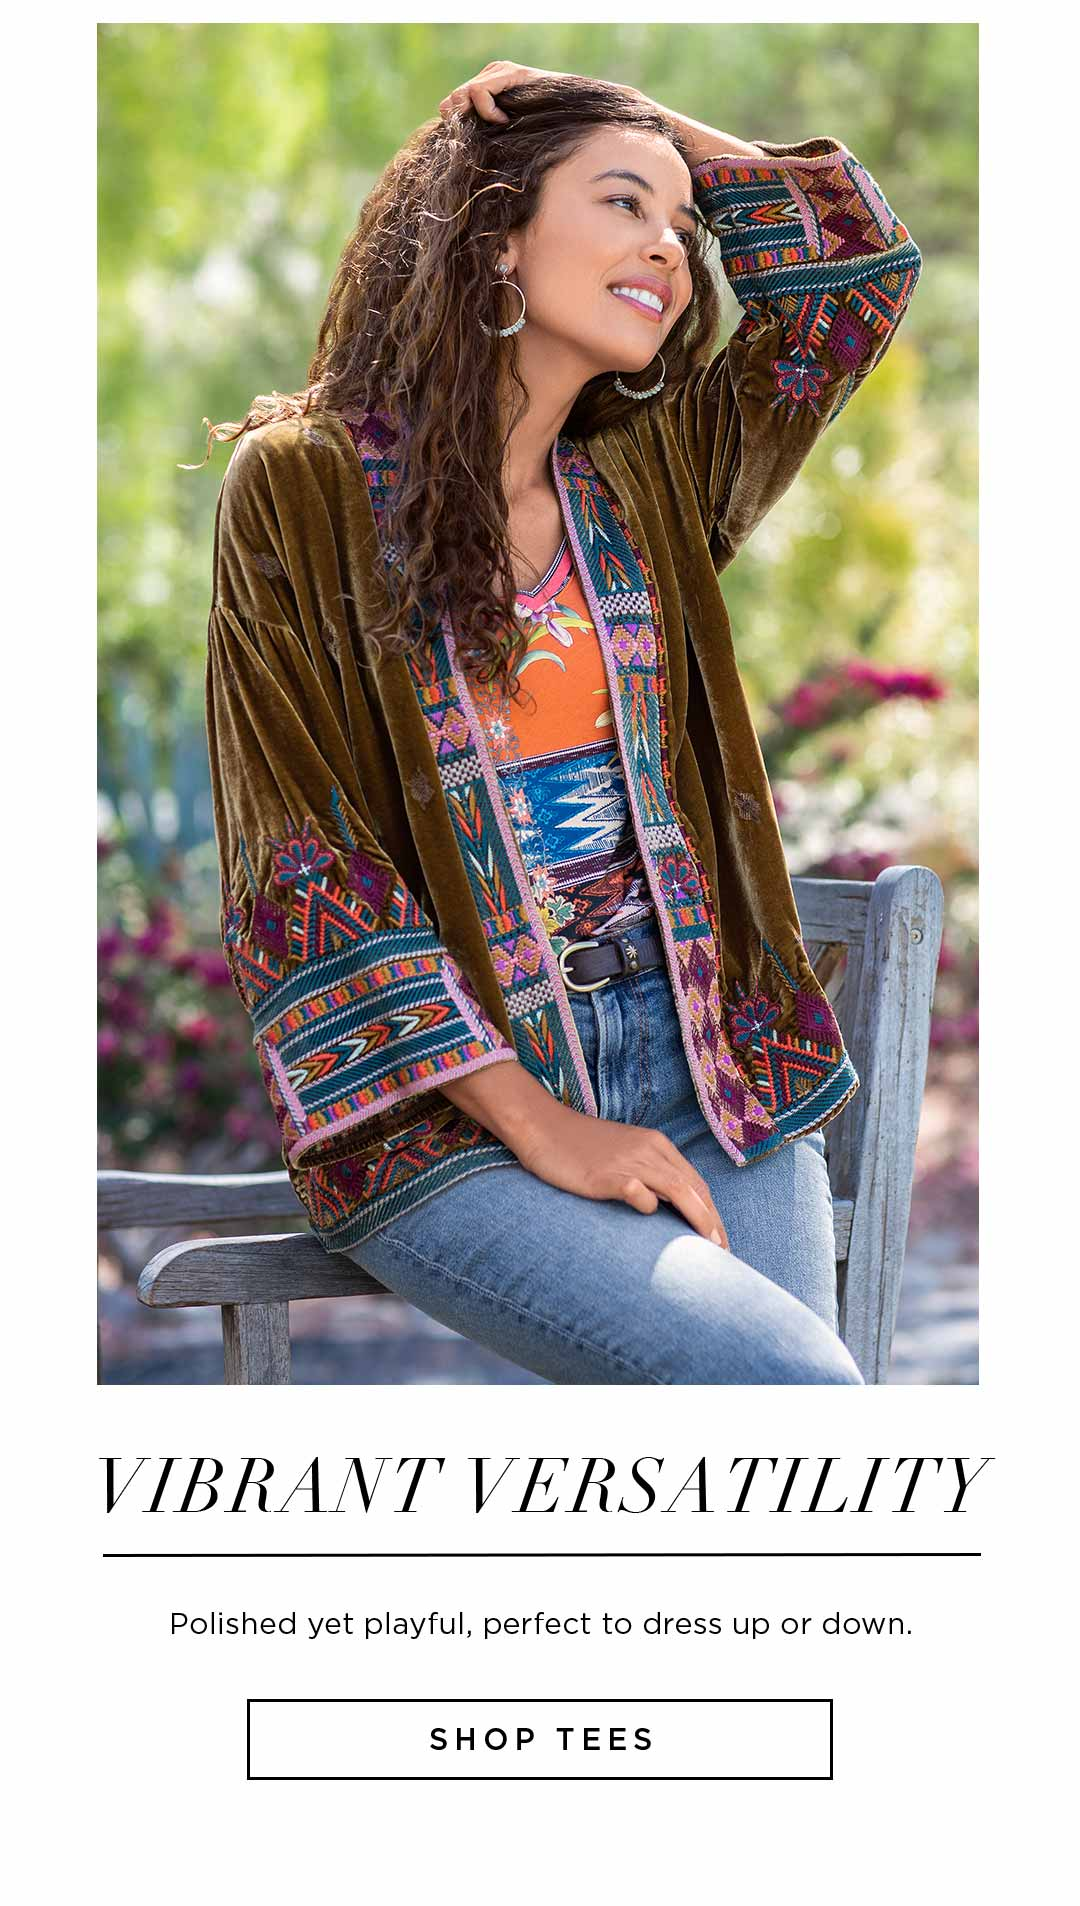 Vibrant Versatility - Polished yet playful, perfect to dress up or down - Shop Tees